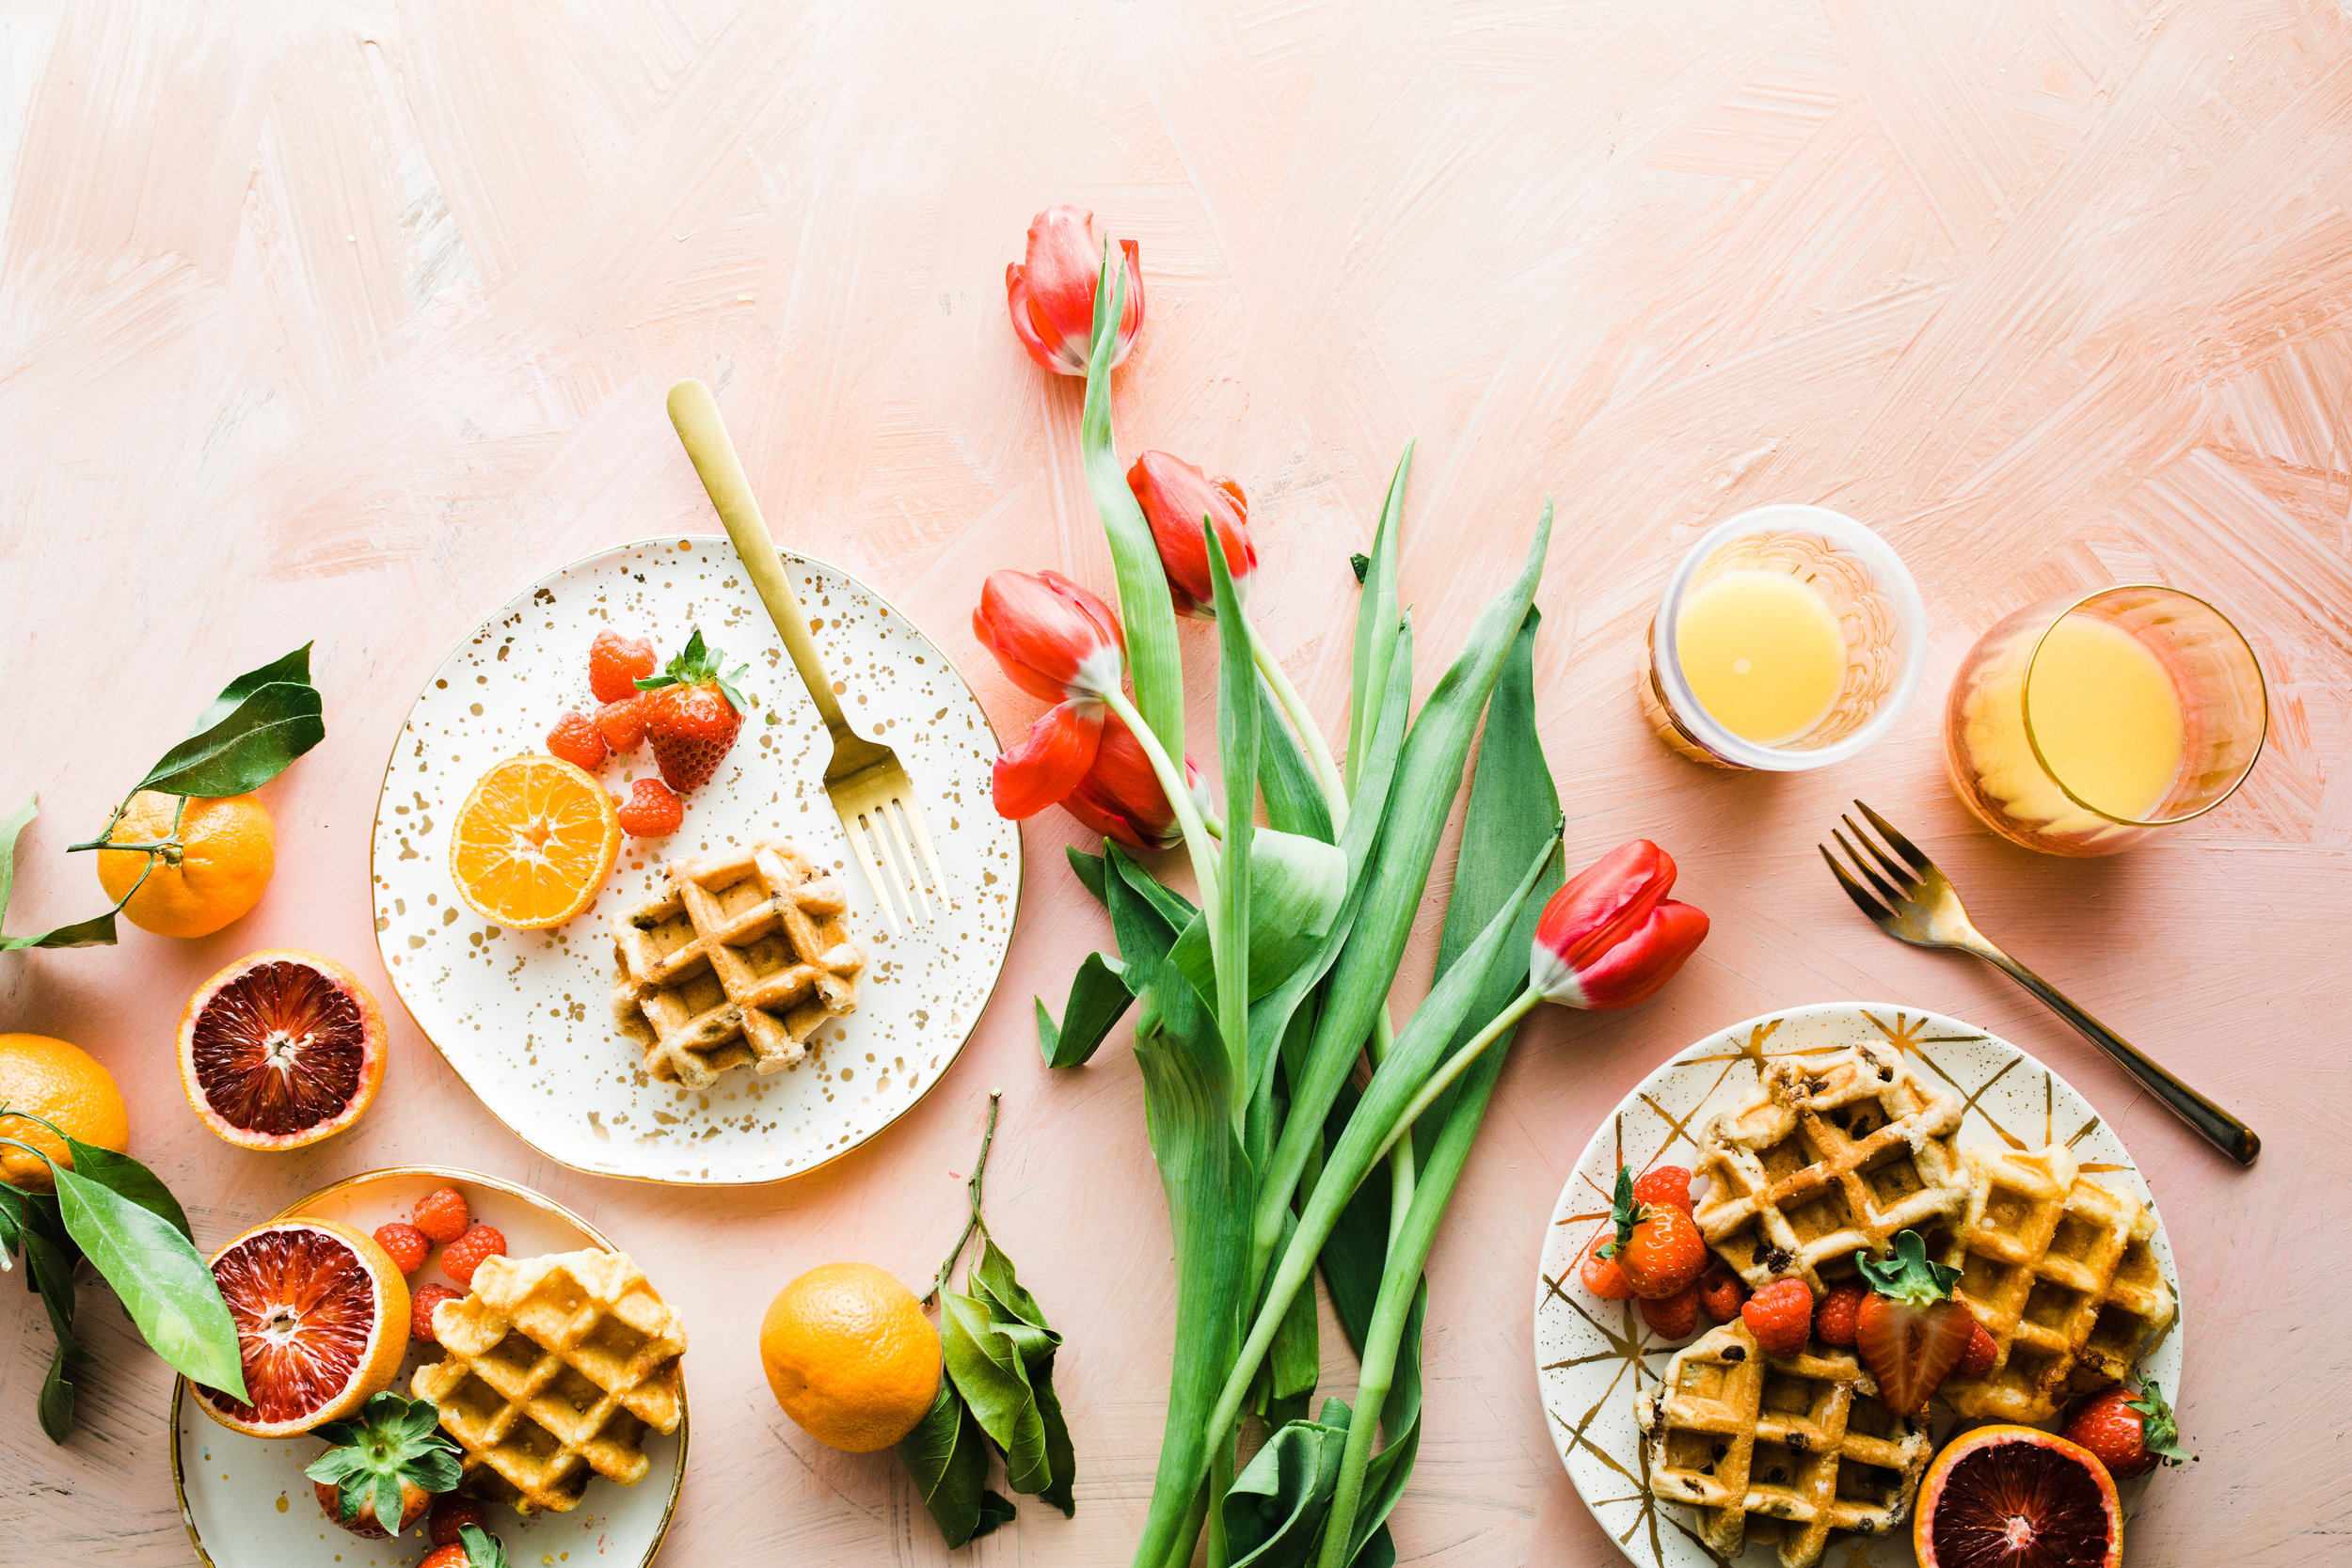 7 Simple Tricks To Take Instantly Better Food Photos Brooke Lark